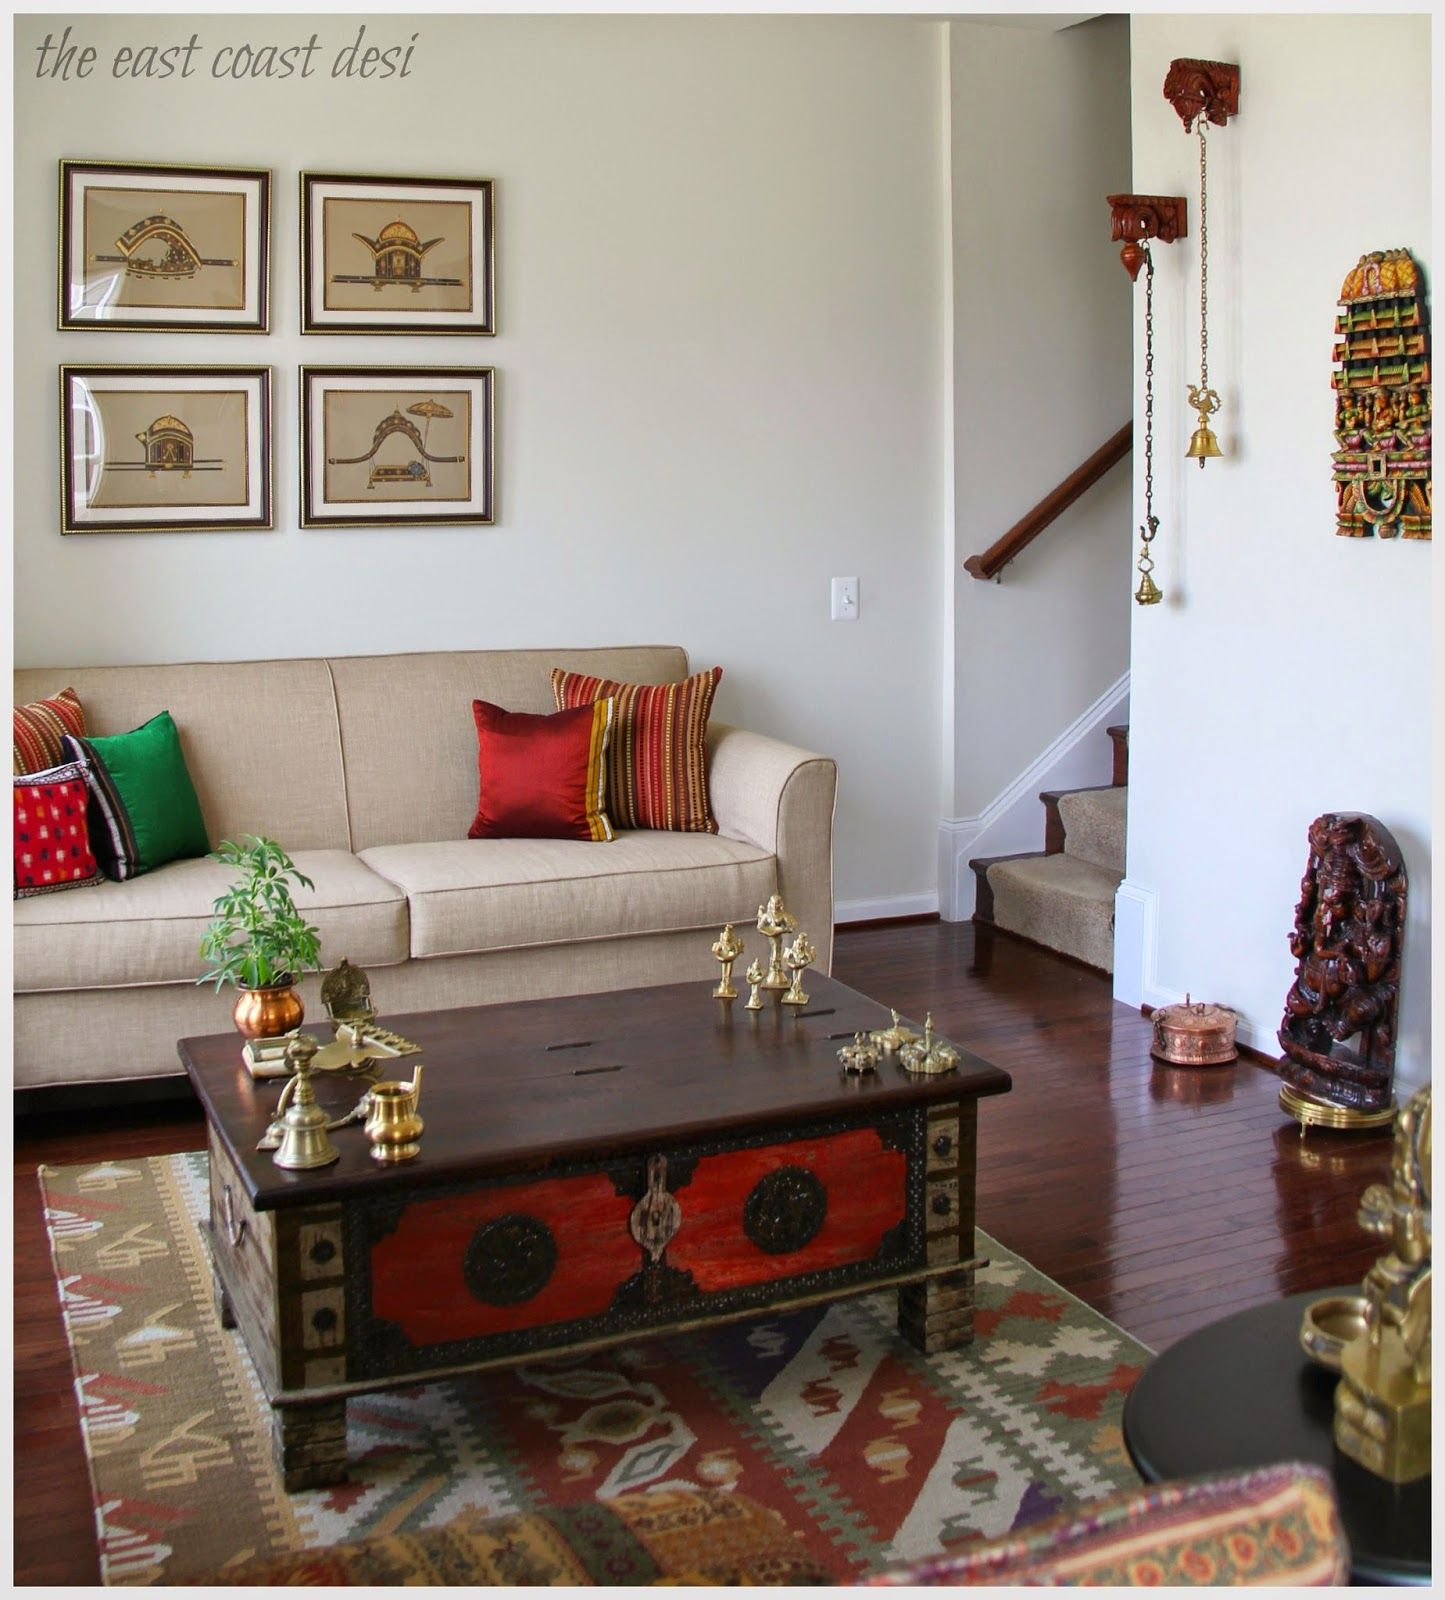 Indian Living Room Designs Living Room: The East Coast Desi: Home Decor